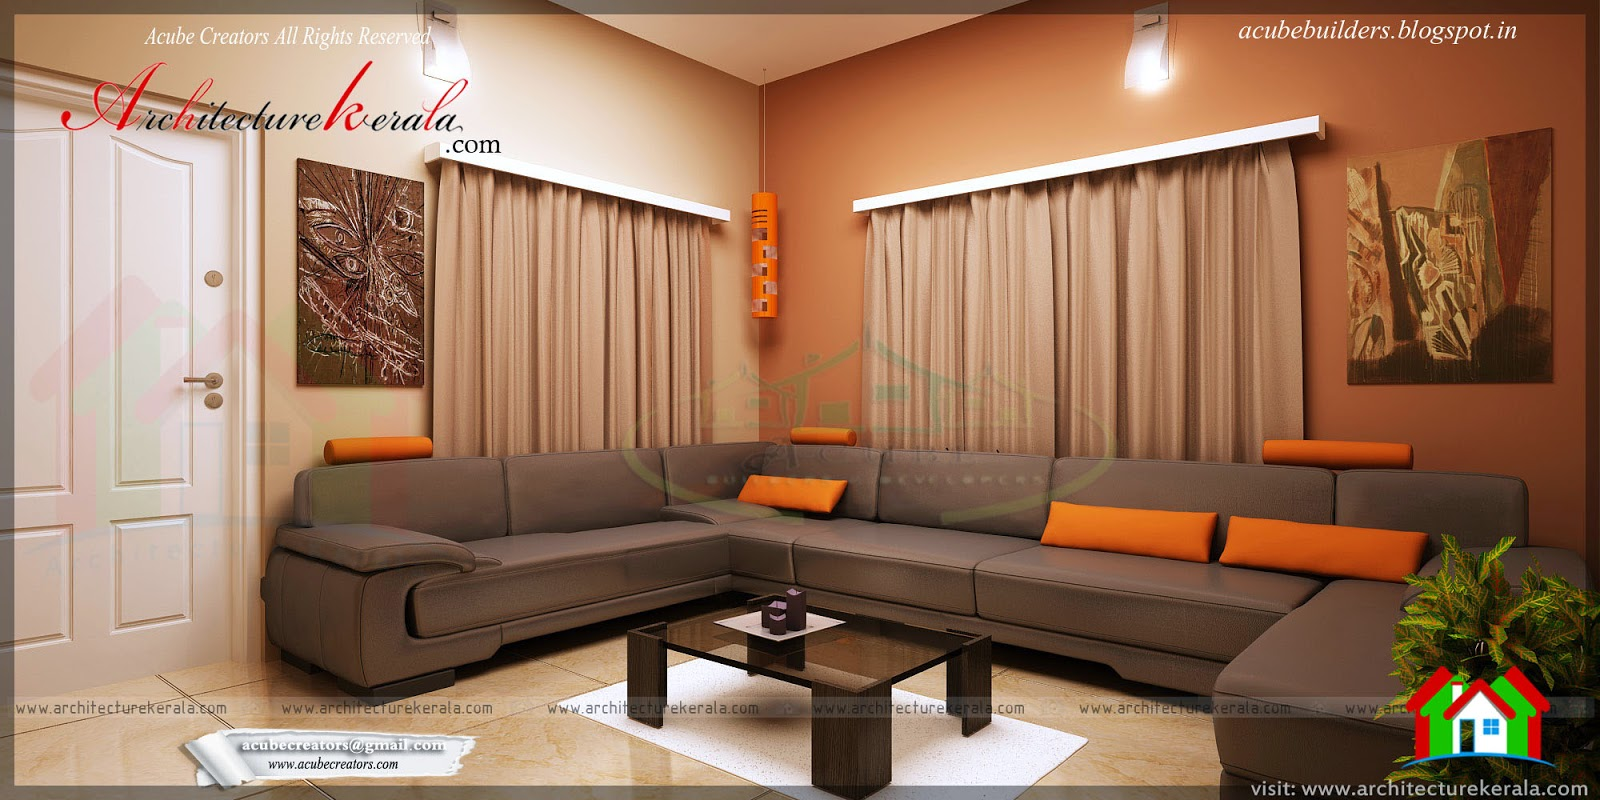 Drawing room interior design architecture kerala for Interieur designer